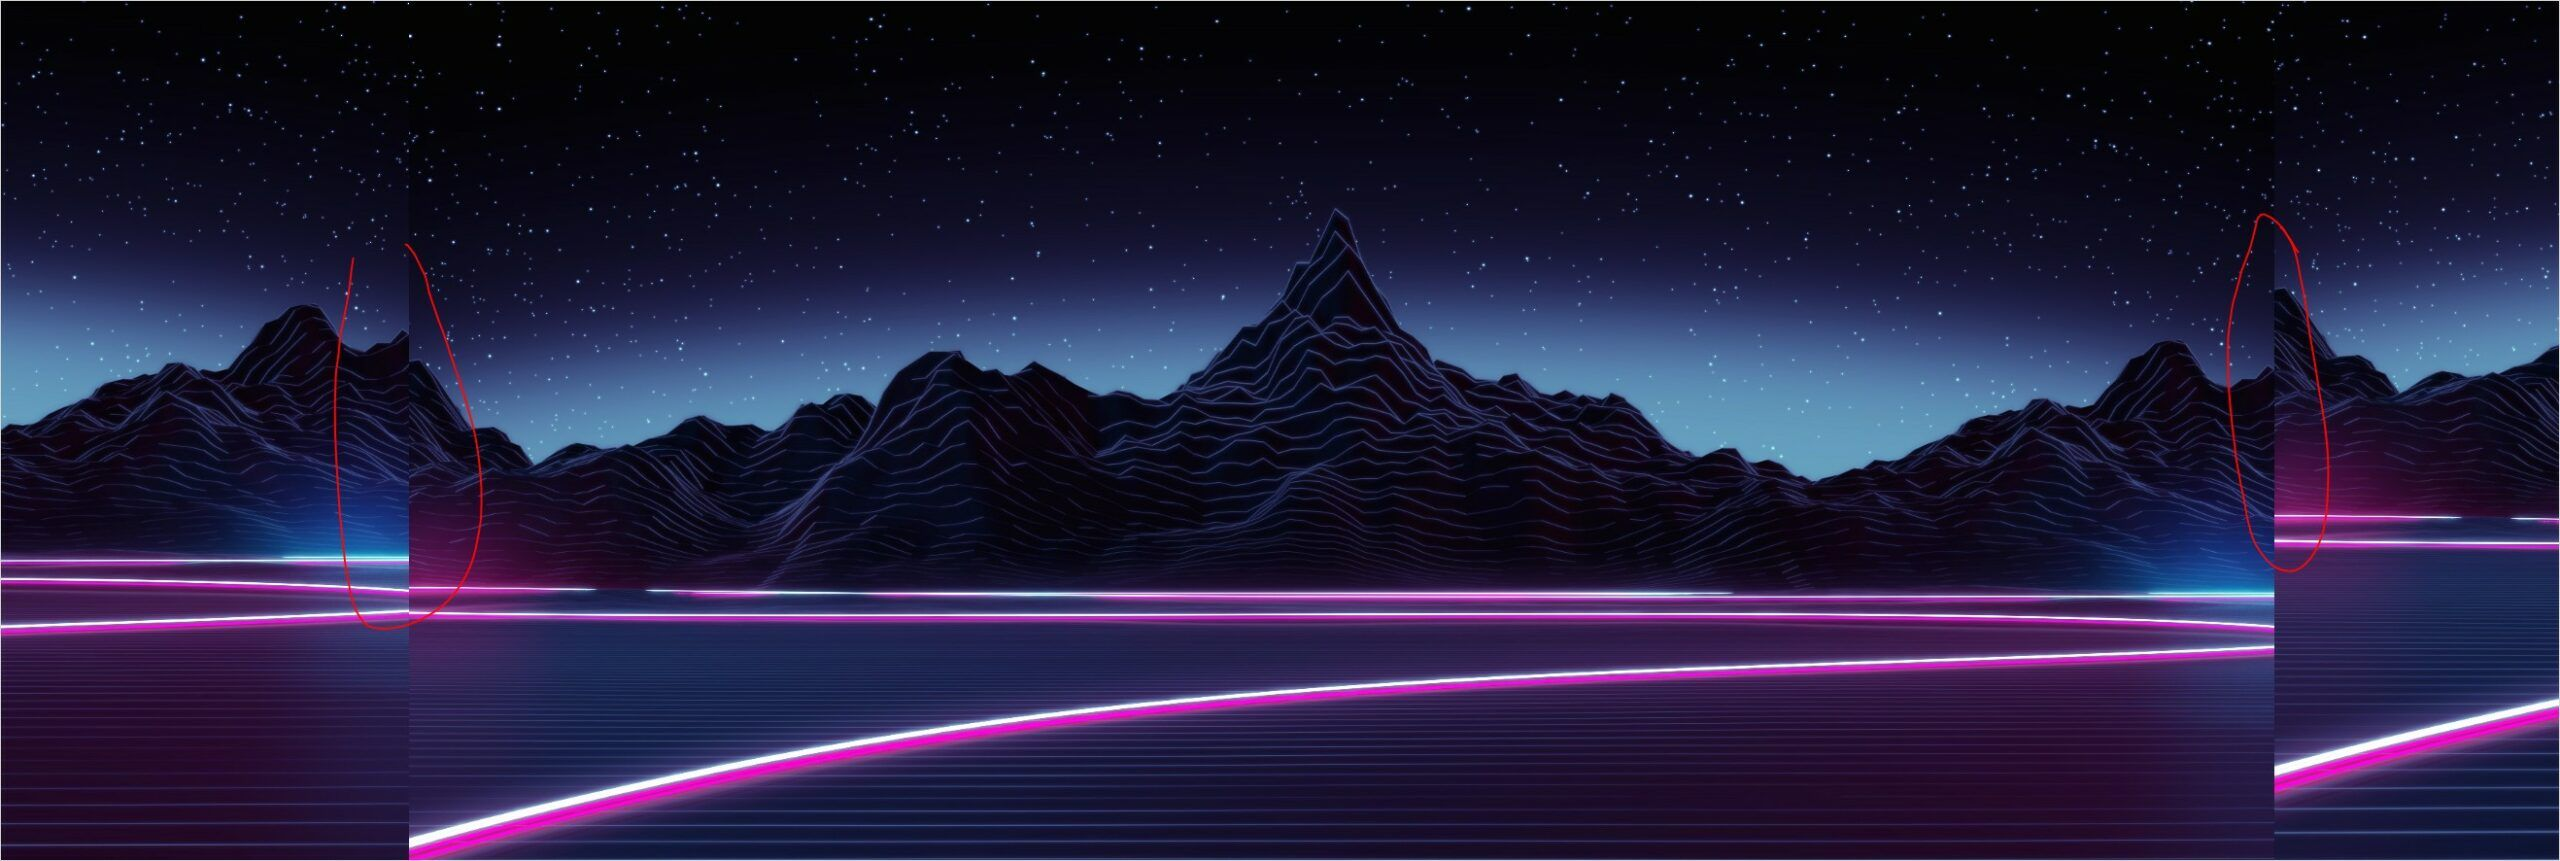 4k 3 Monitors Wallpaper In 2020 Wallpaper Background Images Monitor